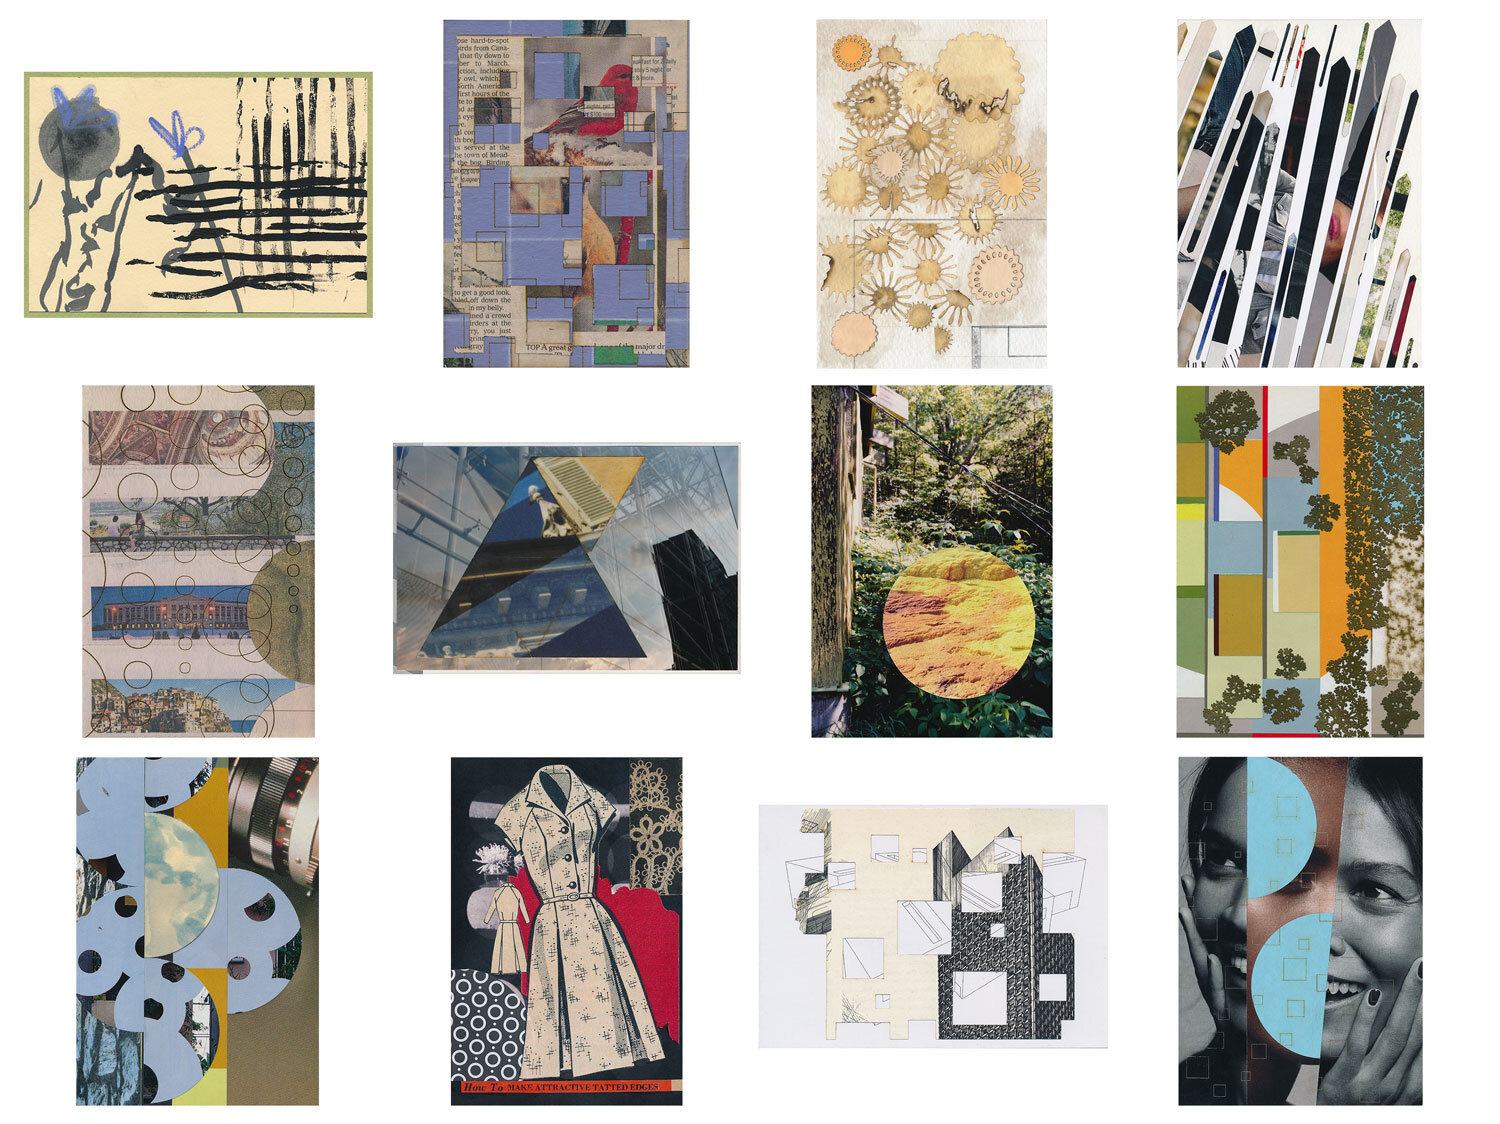 A completed mail art subscription, snail mailed small works of collage in postcard form to Anabelle in New Orleans, July 2016 - June 2017  Artisanal Postcards Numbers 1,349 • 1,324 • 1,335 • 1,556 • 1,529 • 1,581 • 1,505 • 1,474 • 1,447 • 1,380 • 1,612 • 1,408